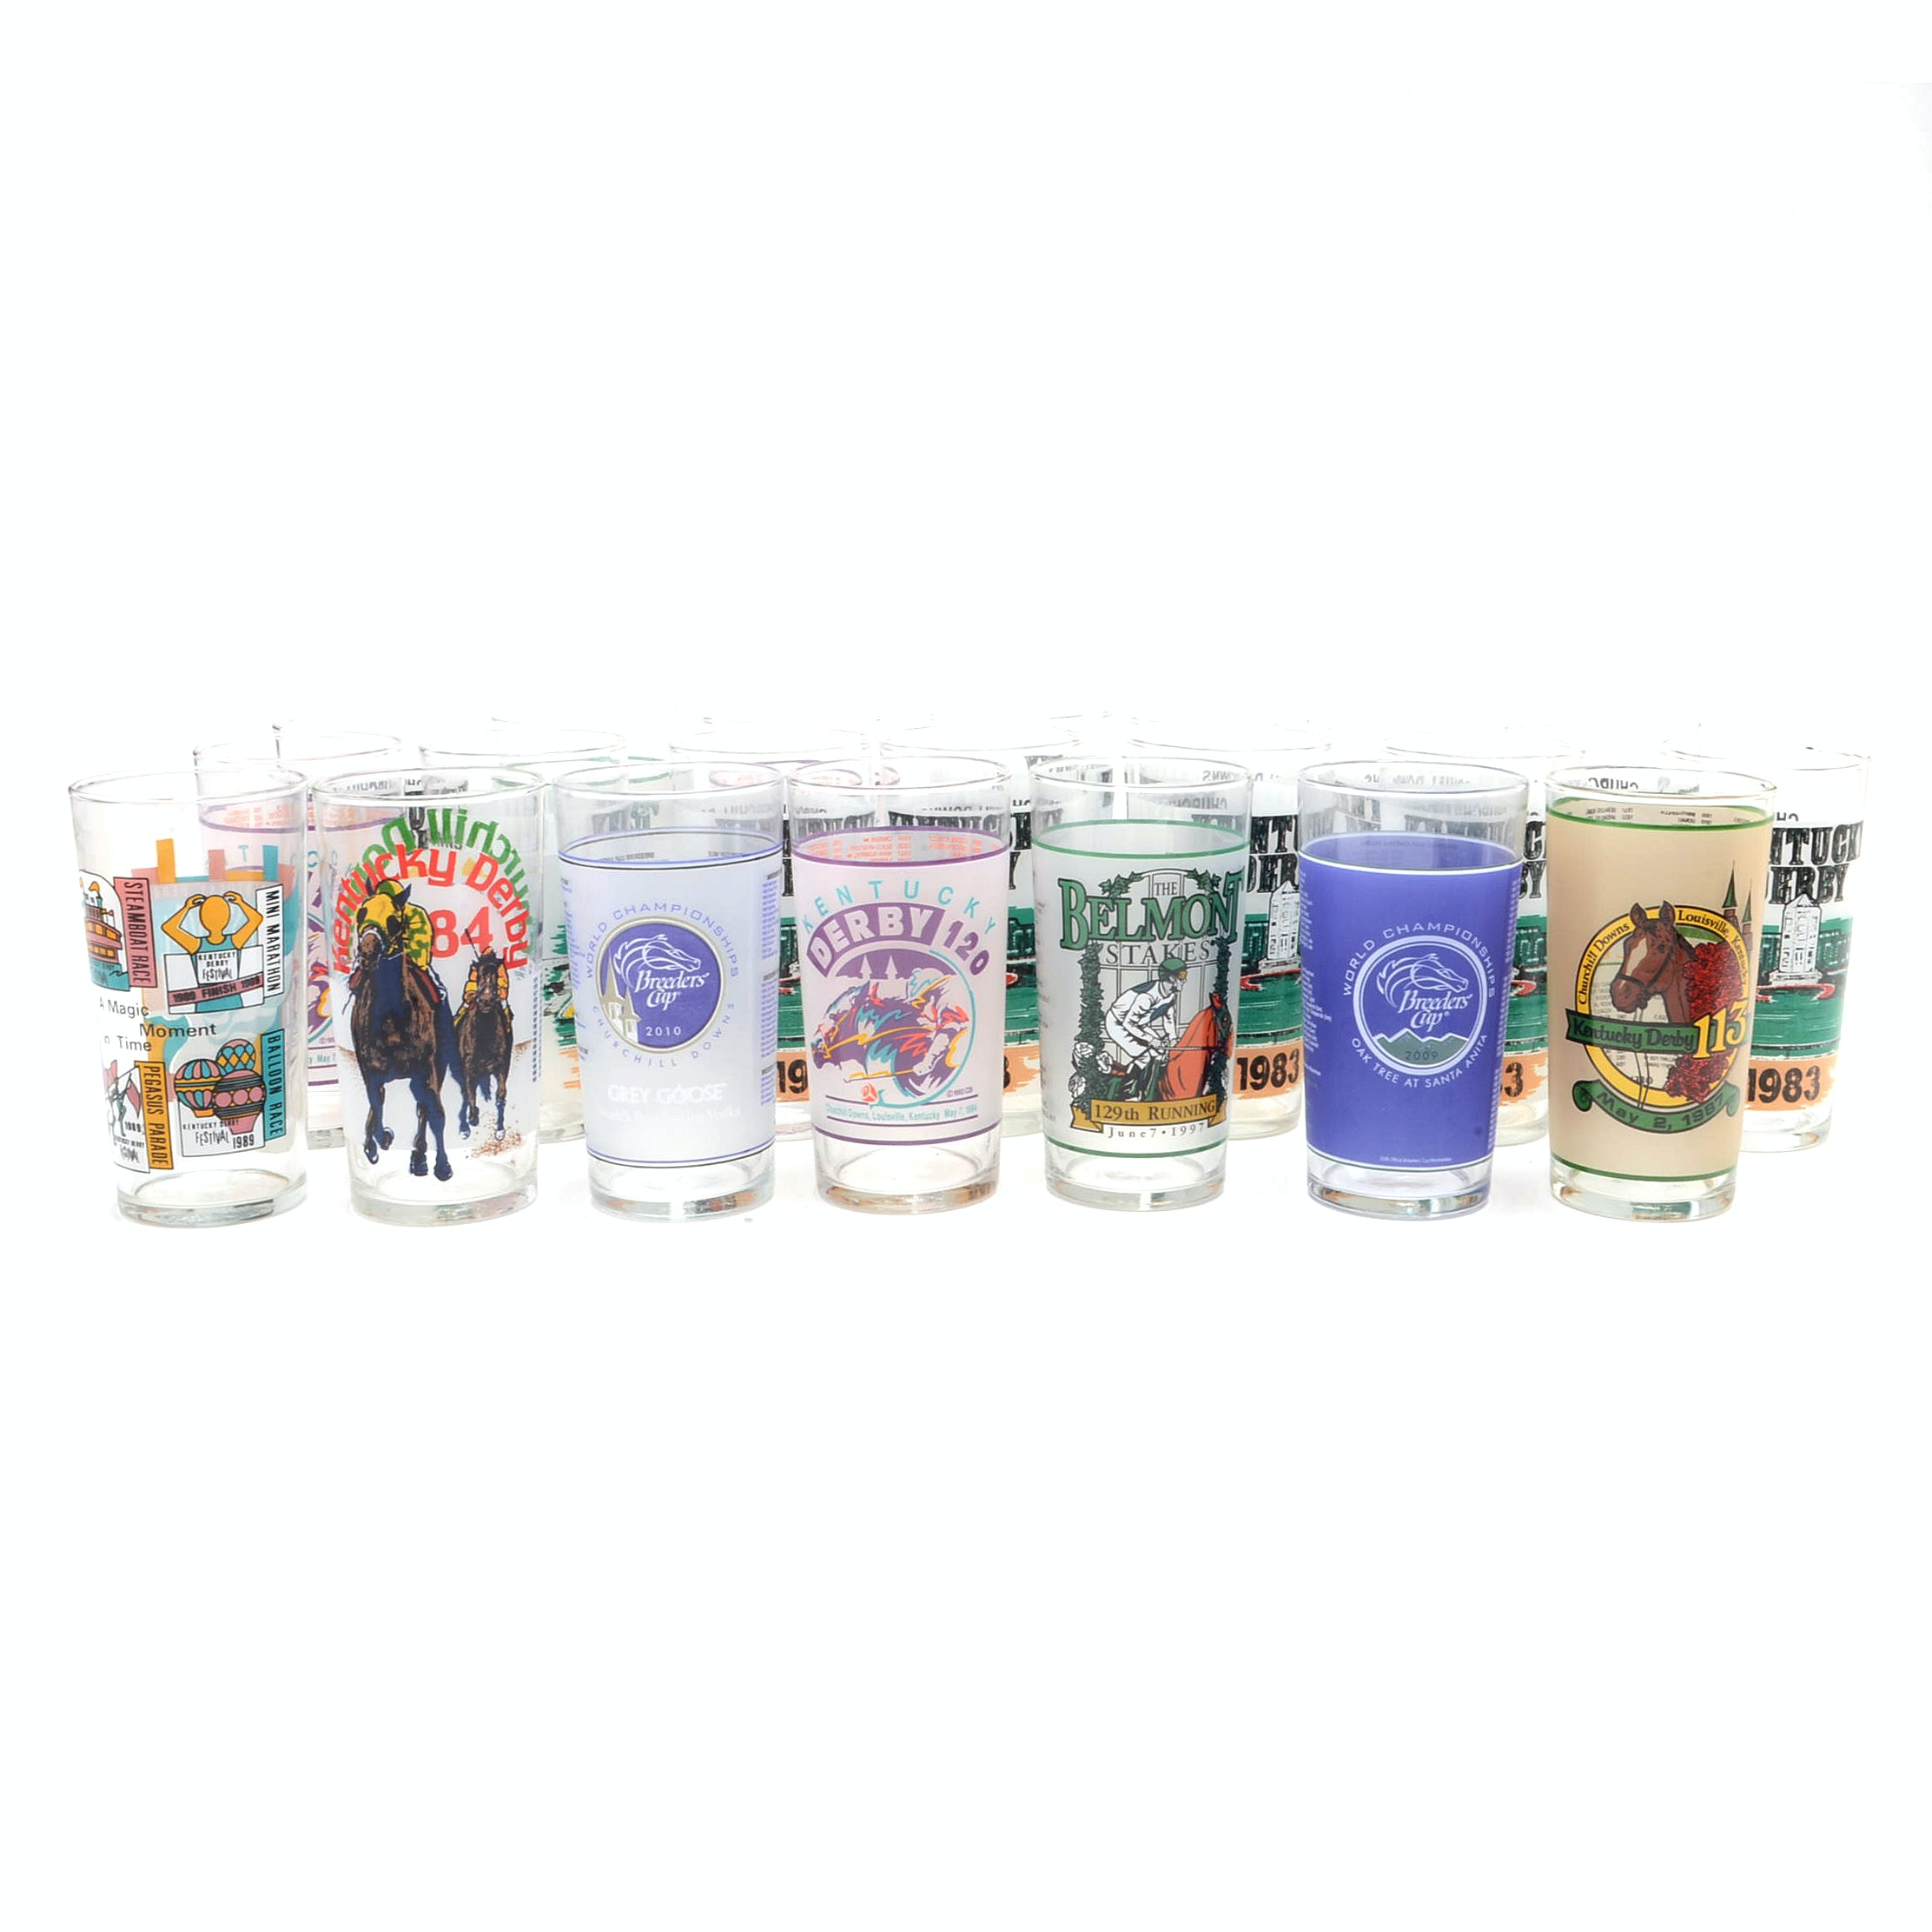 Kentucky Derby, Belmont and Breeders Cup Glasses